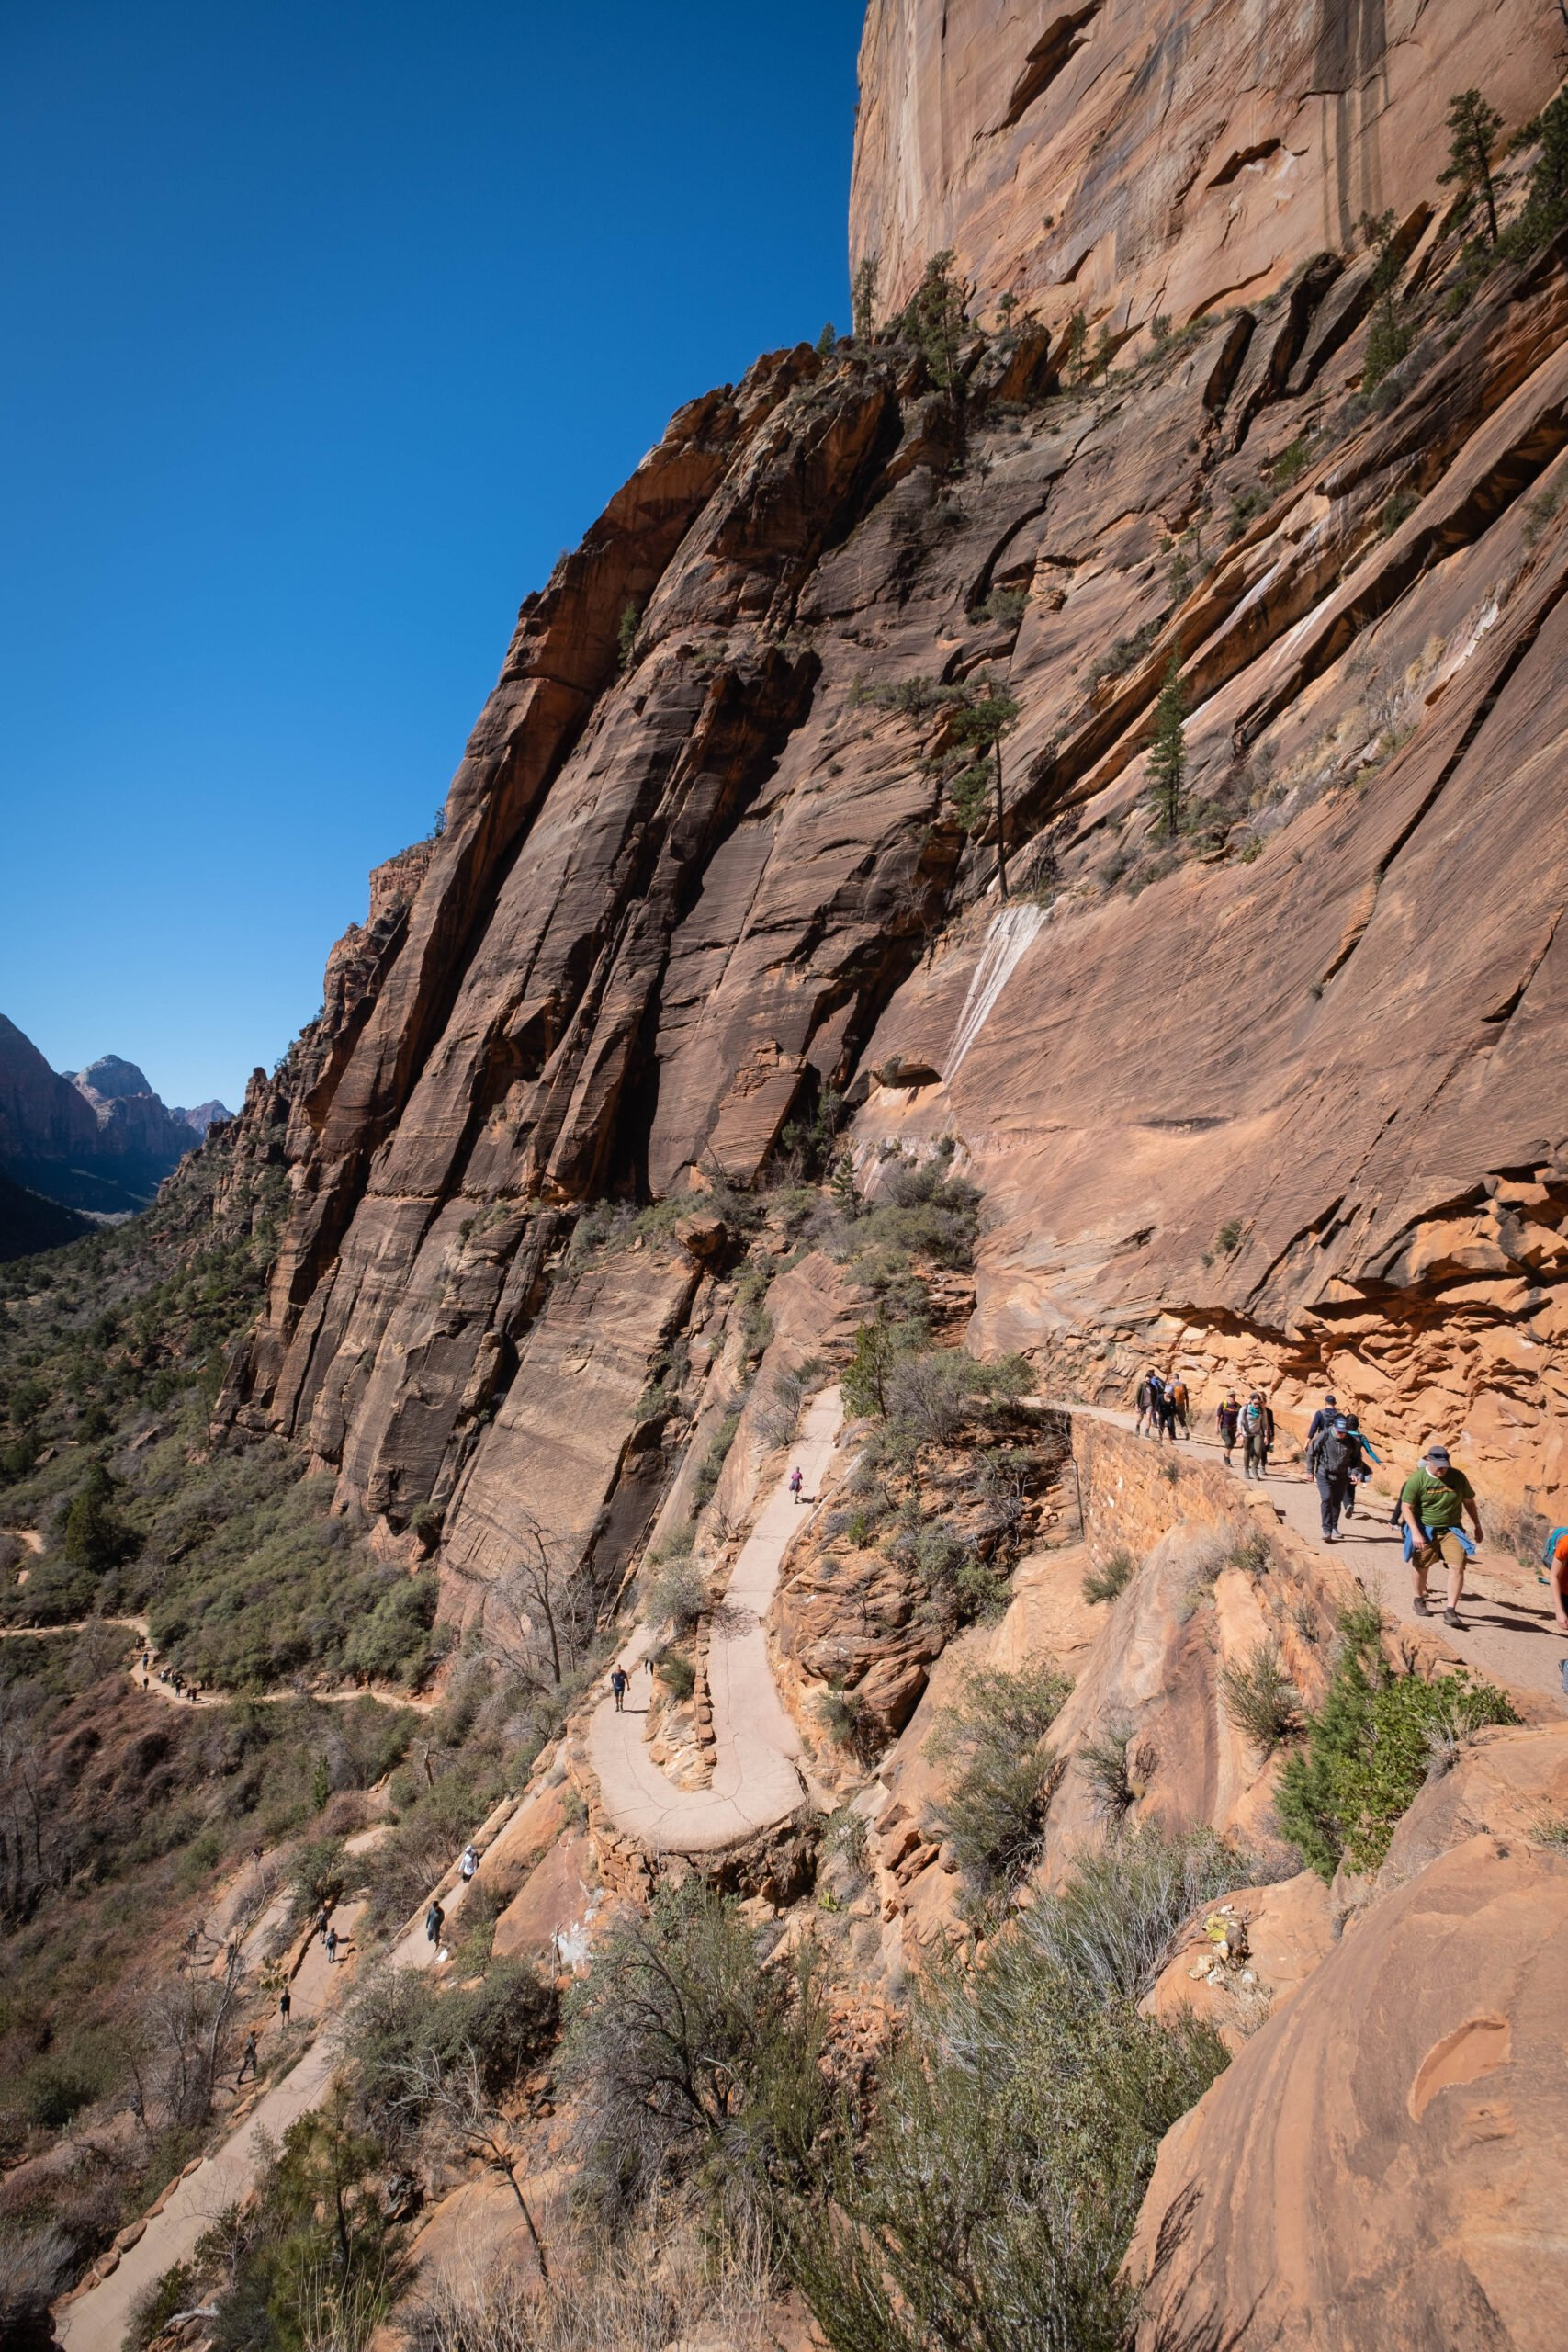 West Rim Trail Hike in Zion to Scouts Lookout and Angels Landing